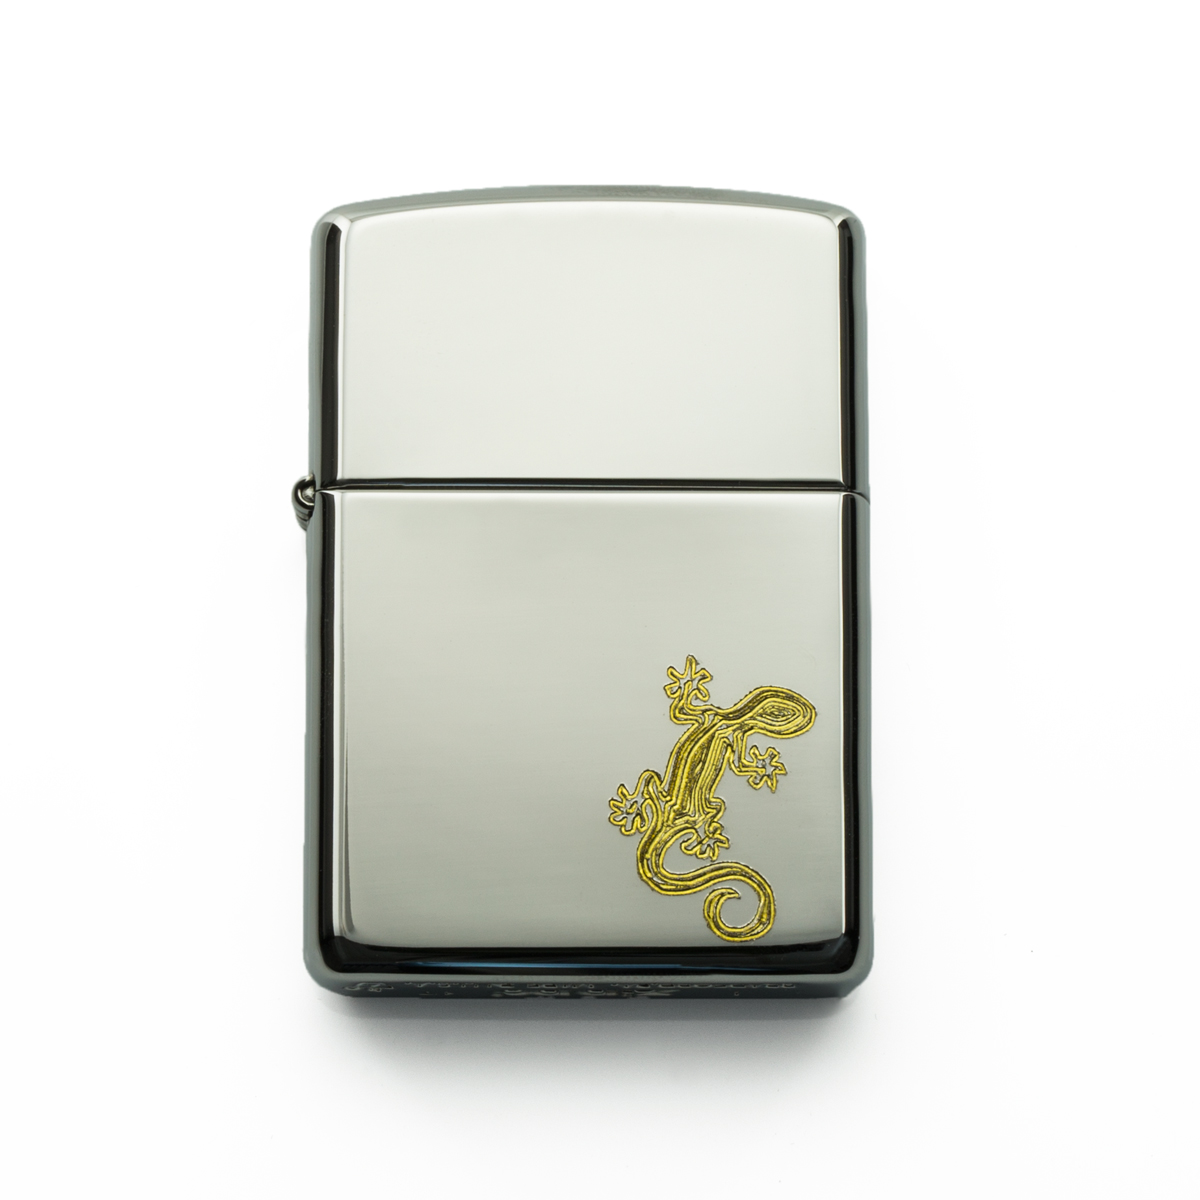 zippo-high-polish-chrome-khac-logo-lizard-than-lan-2